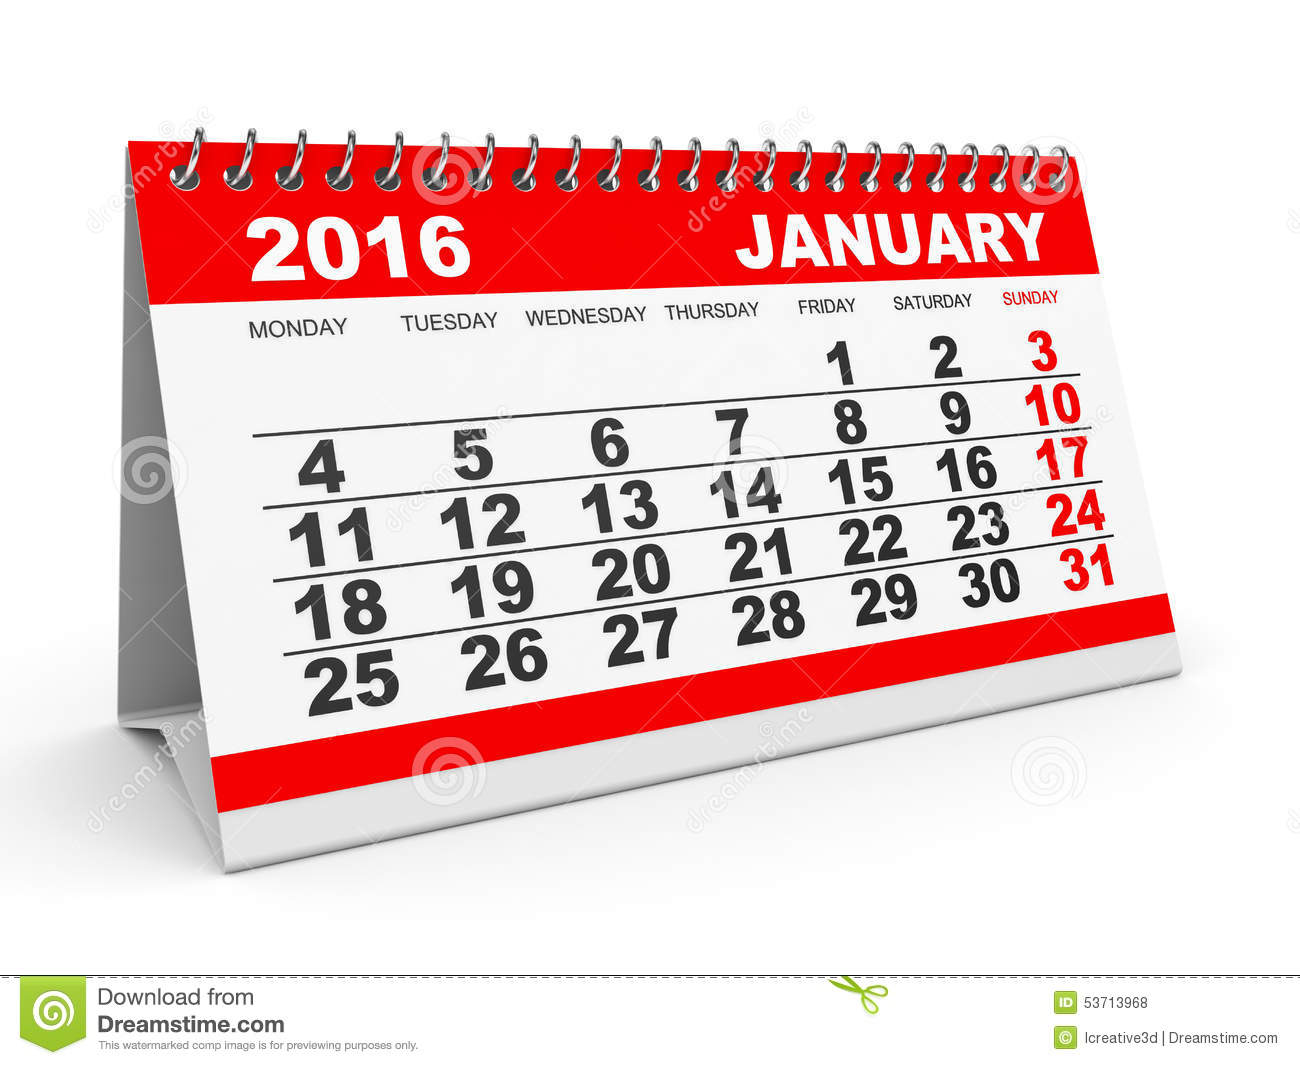 Calendar clipart january 2016 2017 january – January calendars